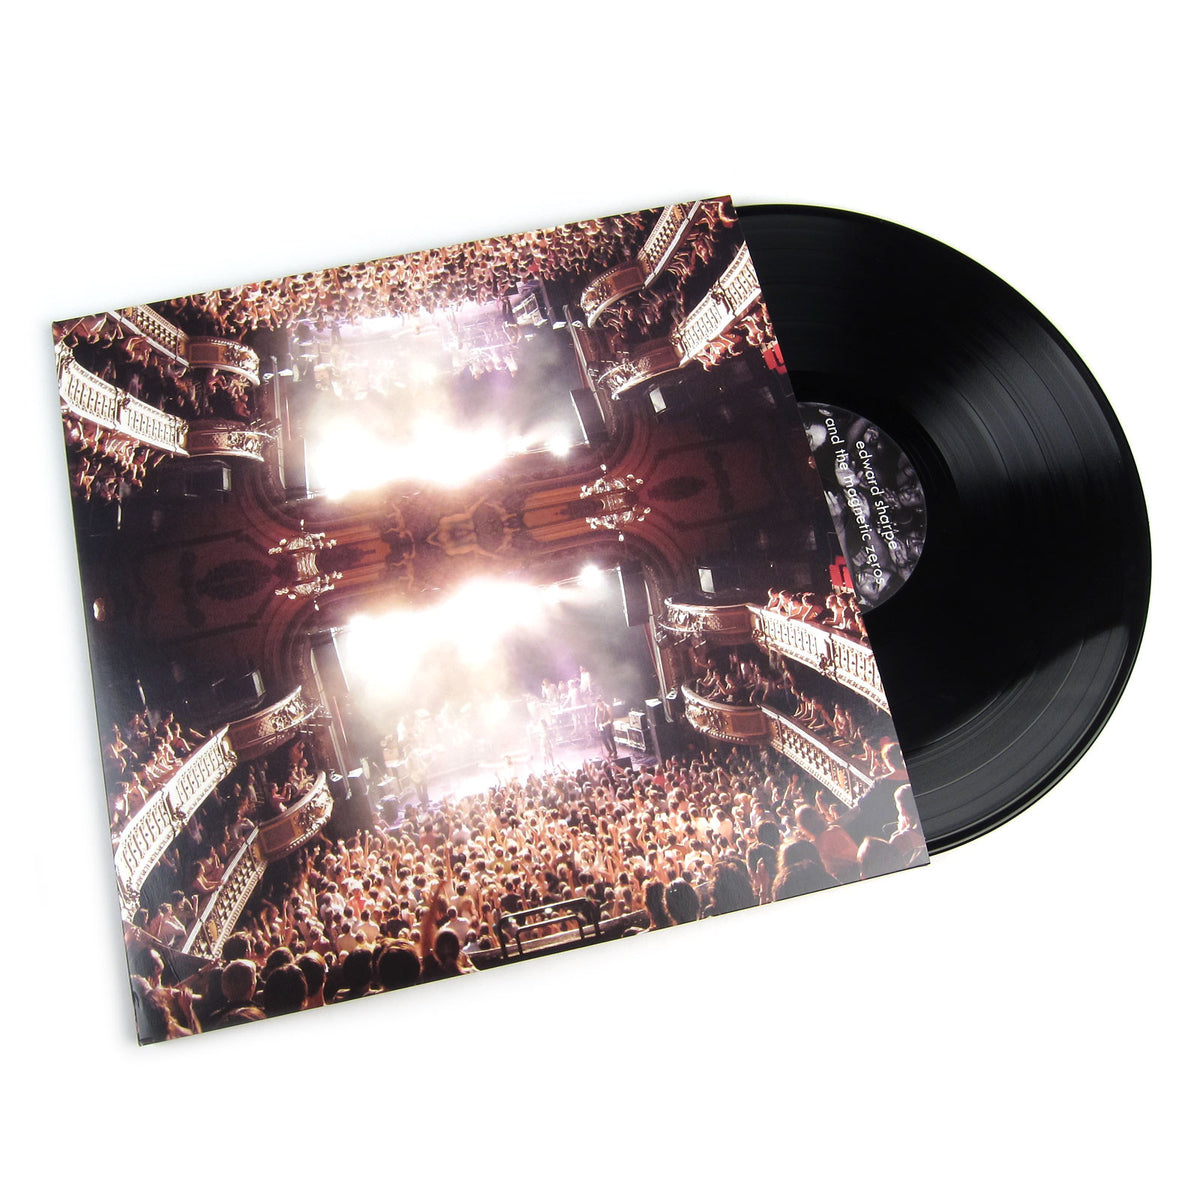 Edward Sharpe And The Magnetic Zeros: Live In No Particular Order Vinyl 3LP